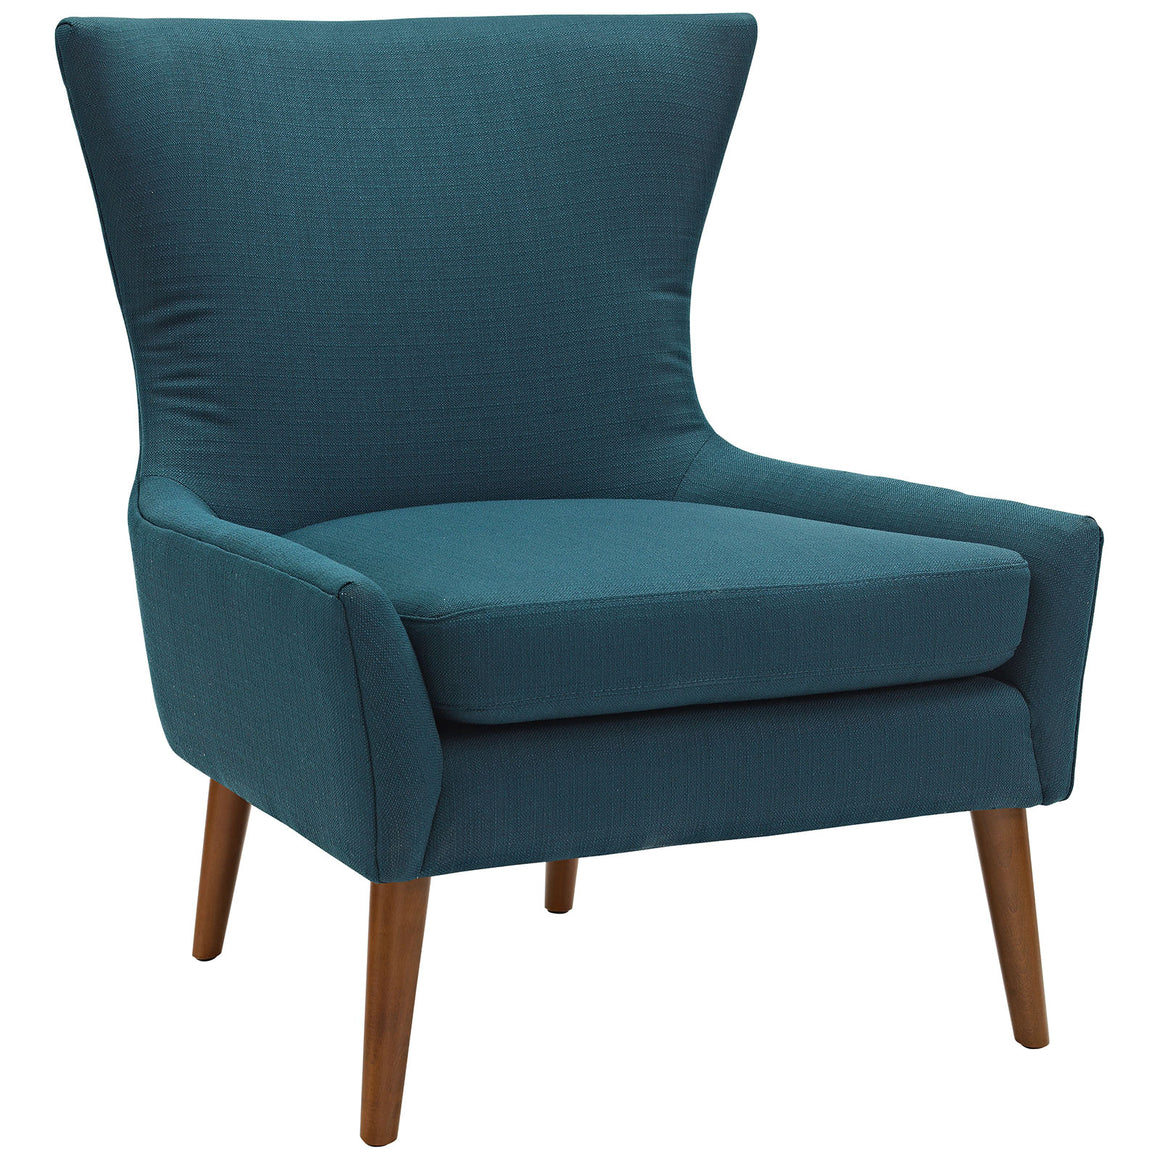 Keen Upholstered Fabric Armchair